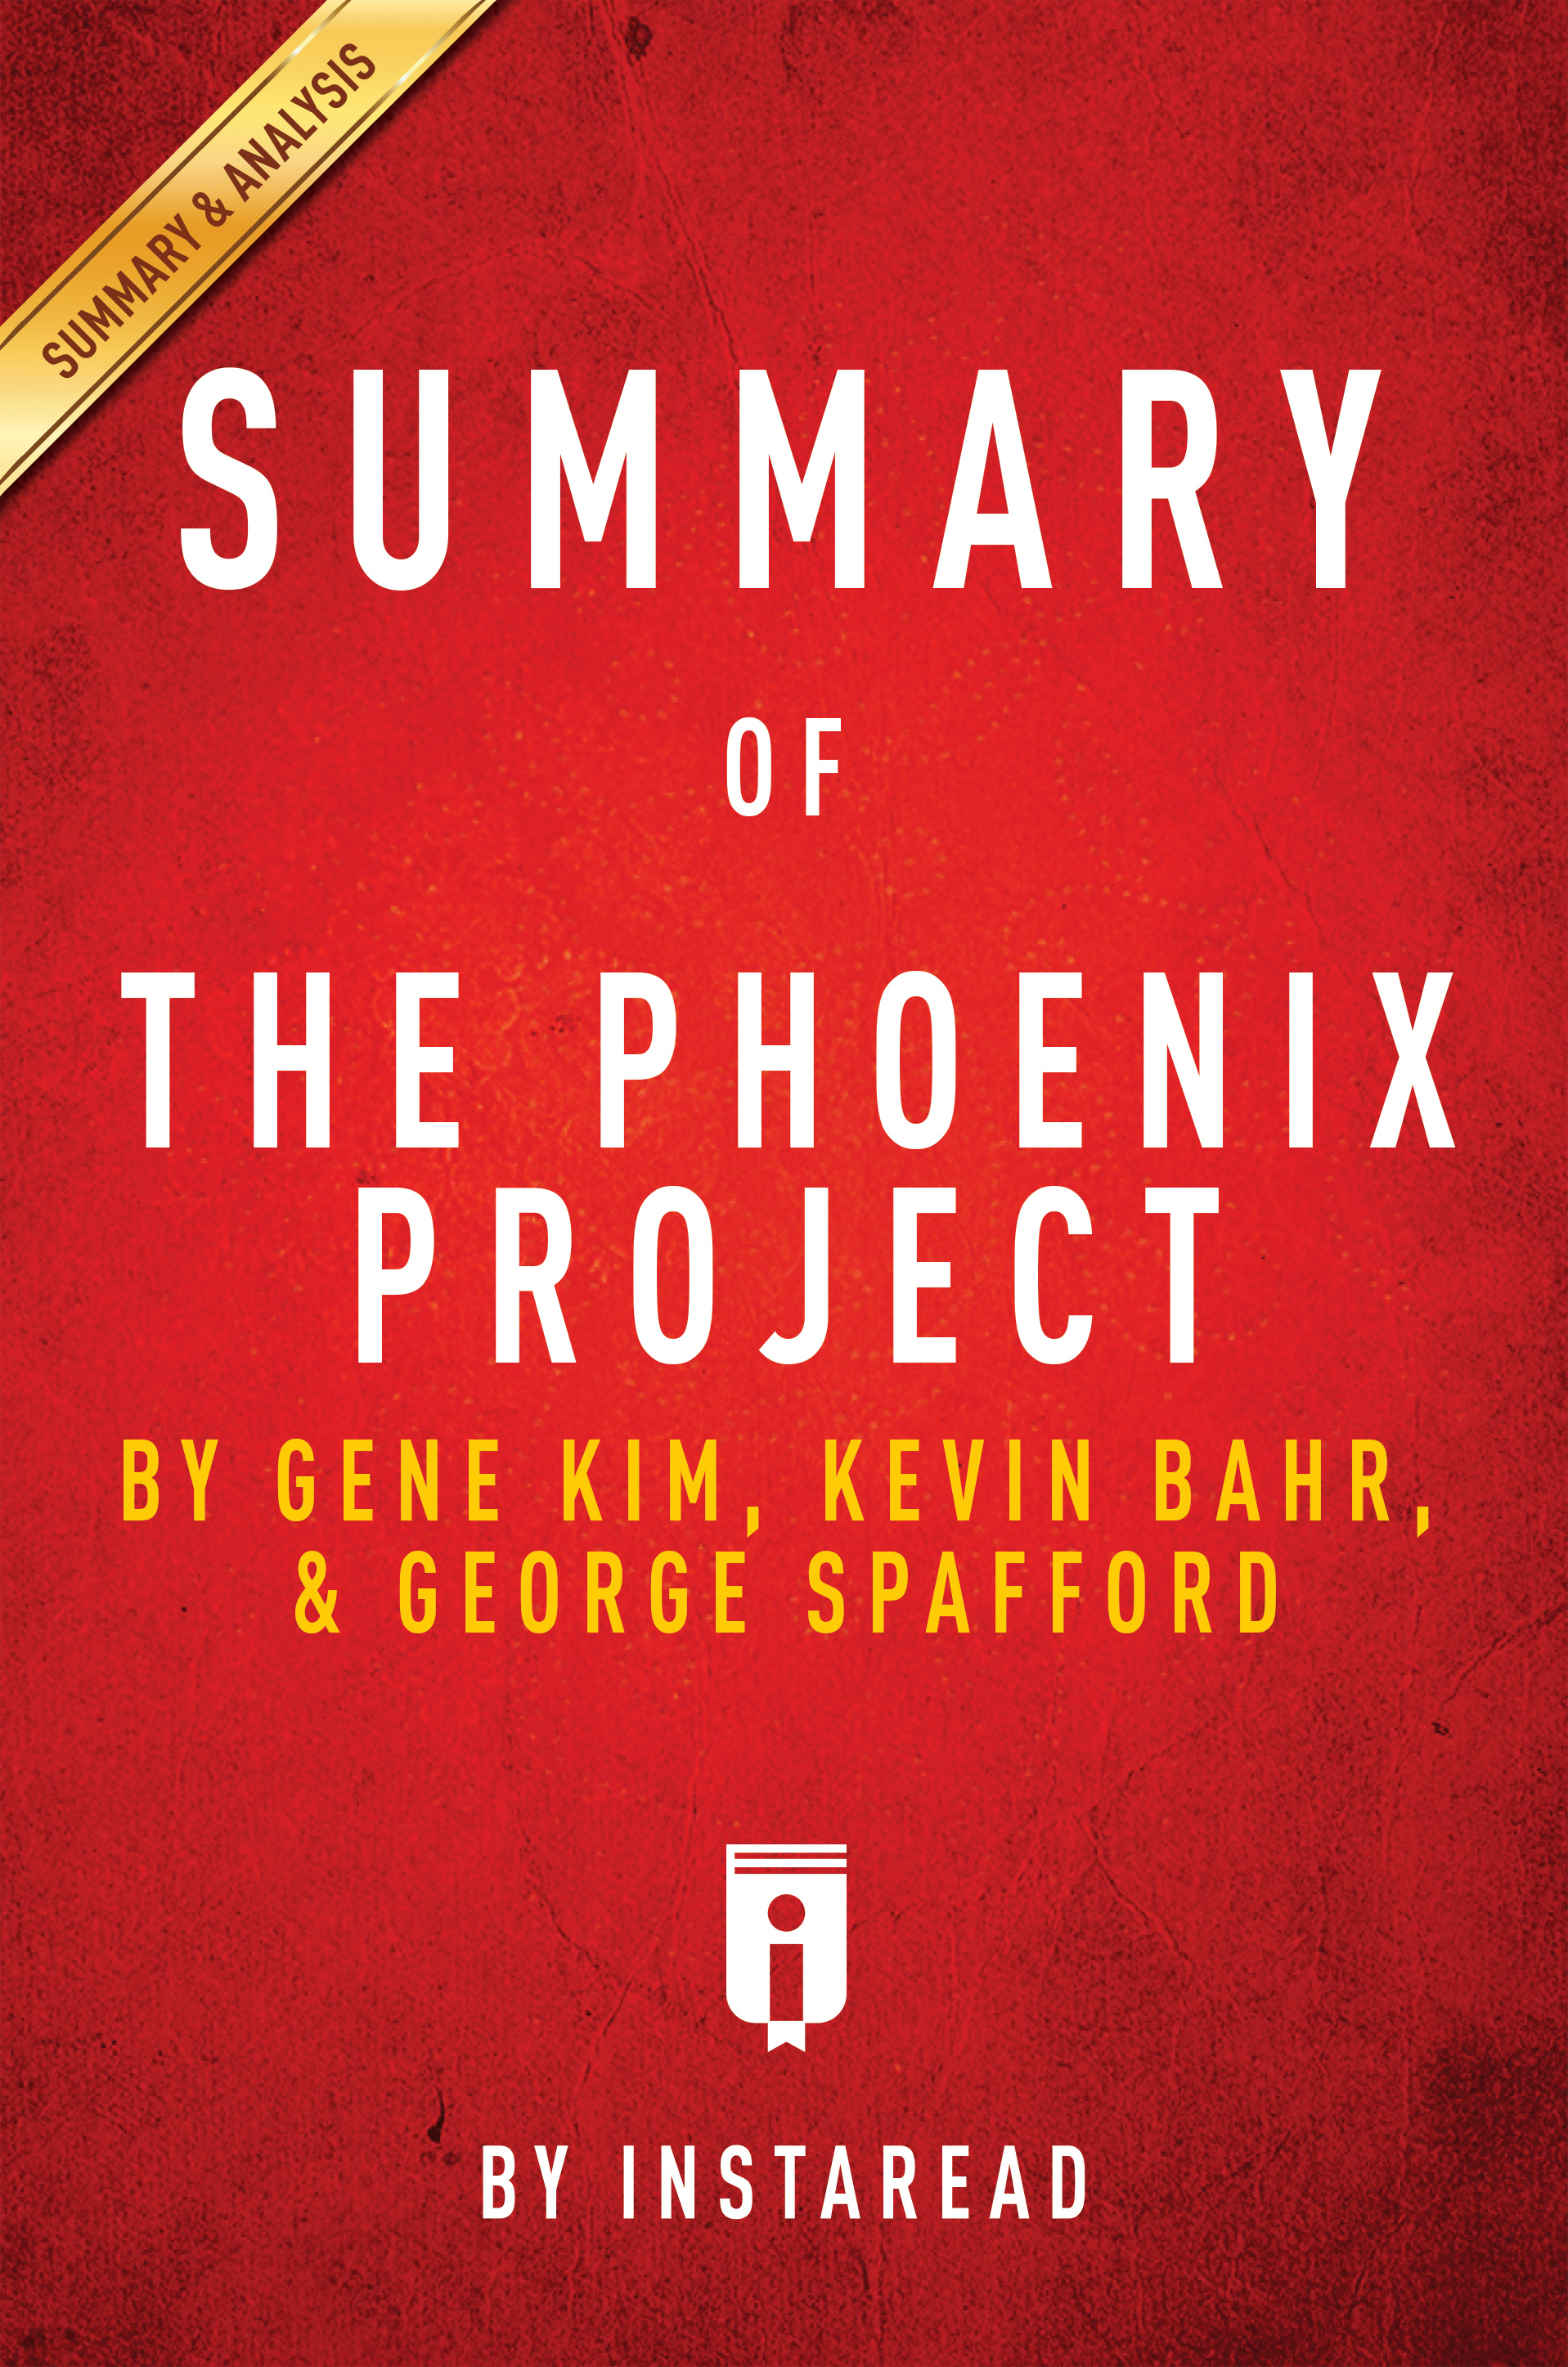 Download Ebook Summary of The Phoenix Project by . Instaread Pdf